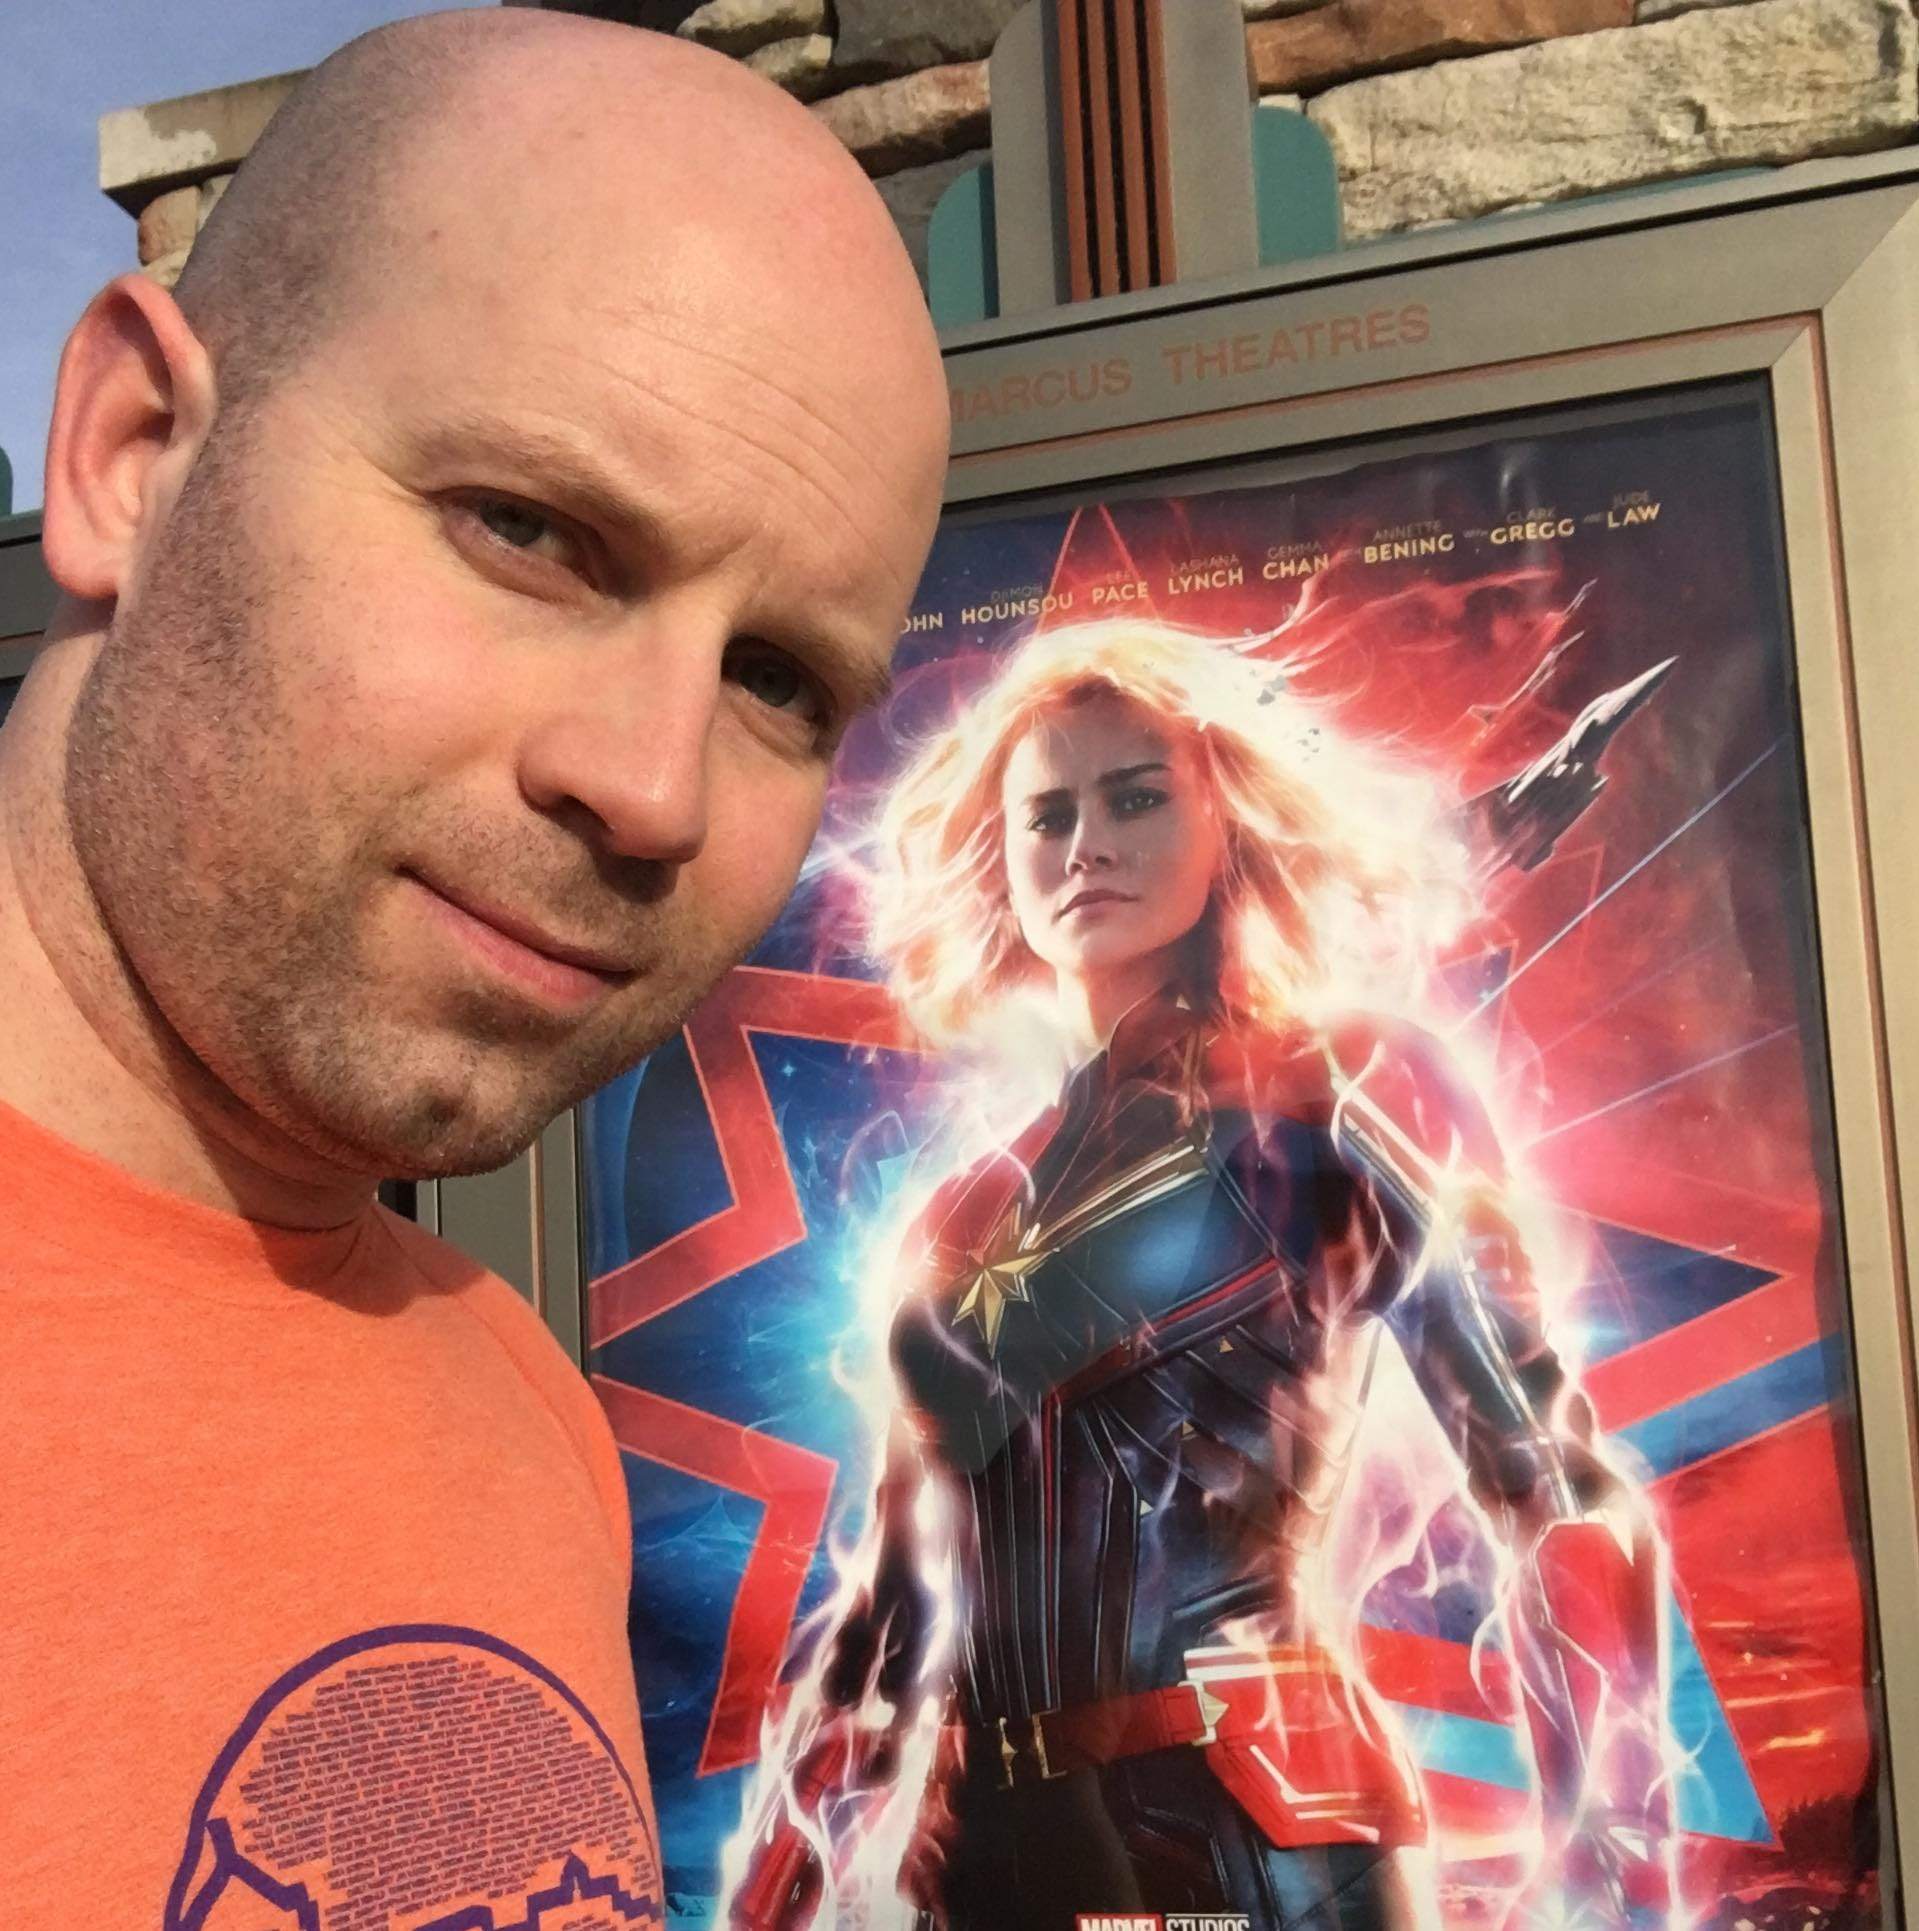 Wisconsin man watches 'Captain Marvel' 116 times, gets Brie Larson shoutout, possible record